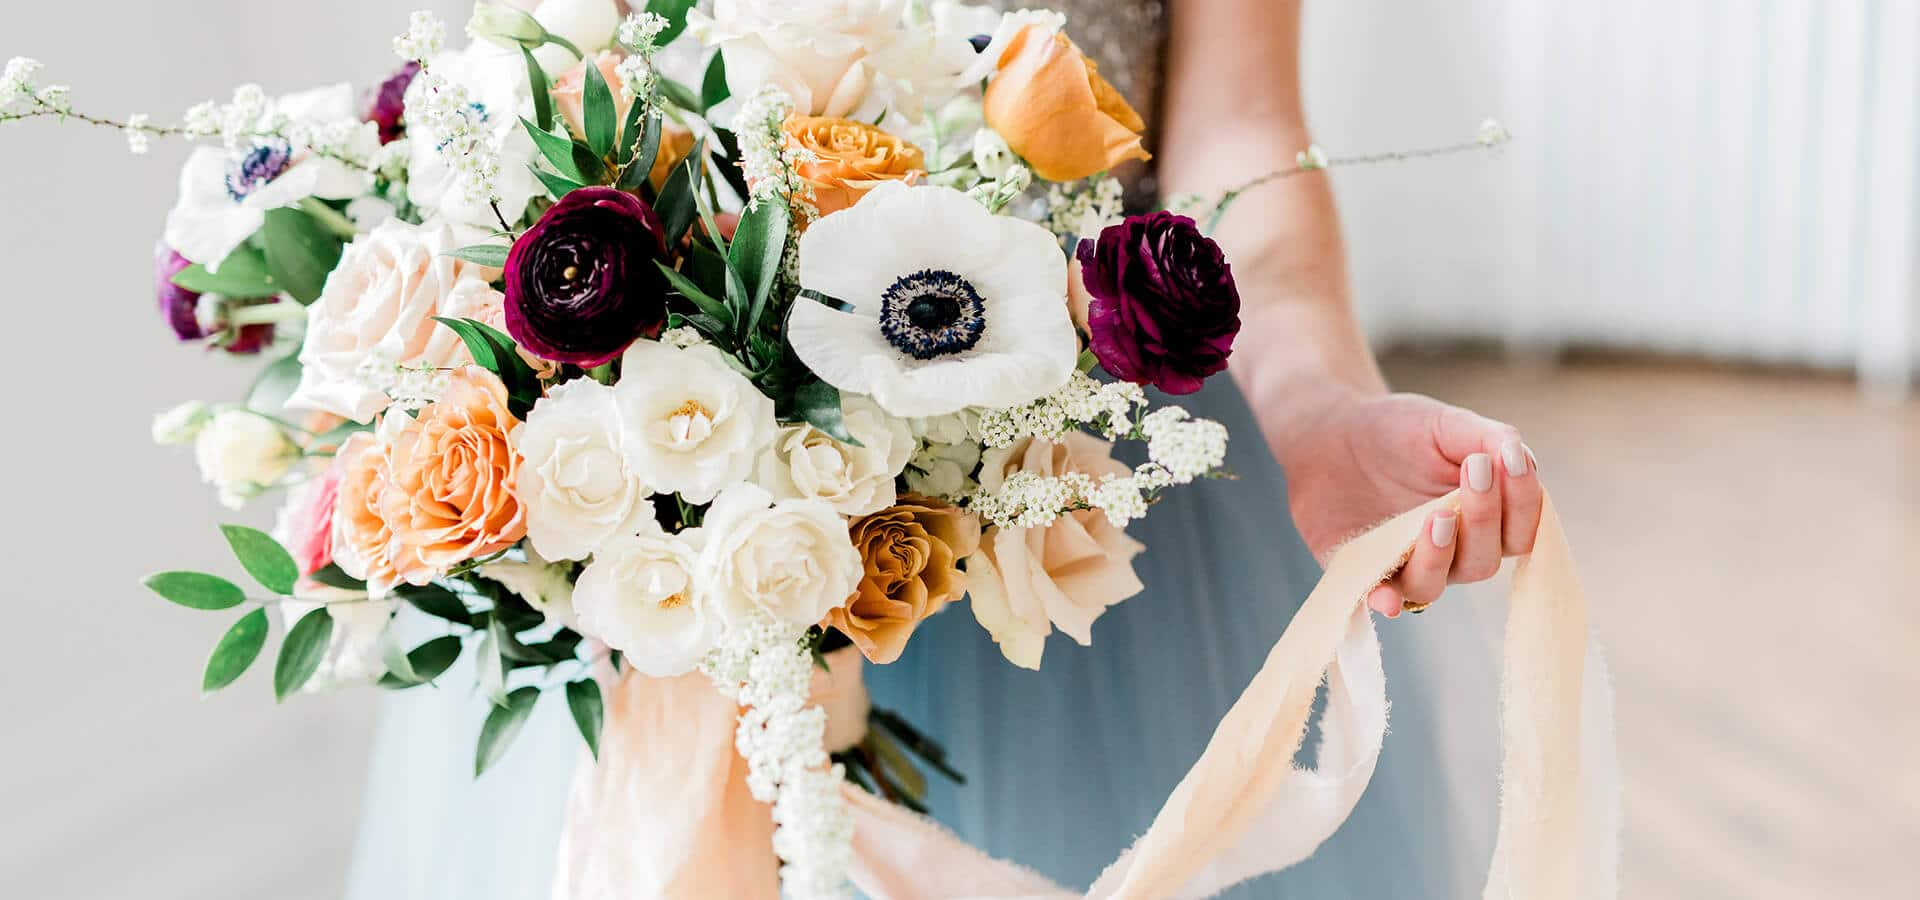 Hero image for Wedding Florals: Inspiration from Toronto's Top Florists